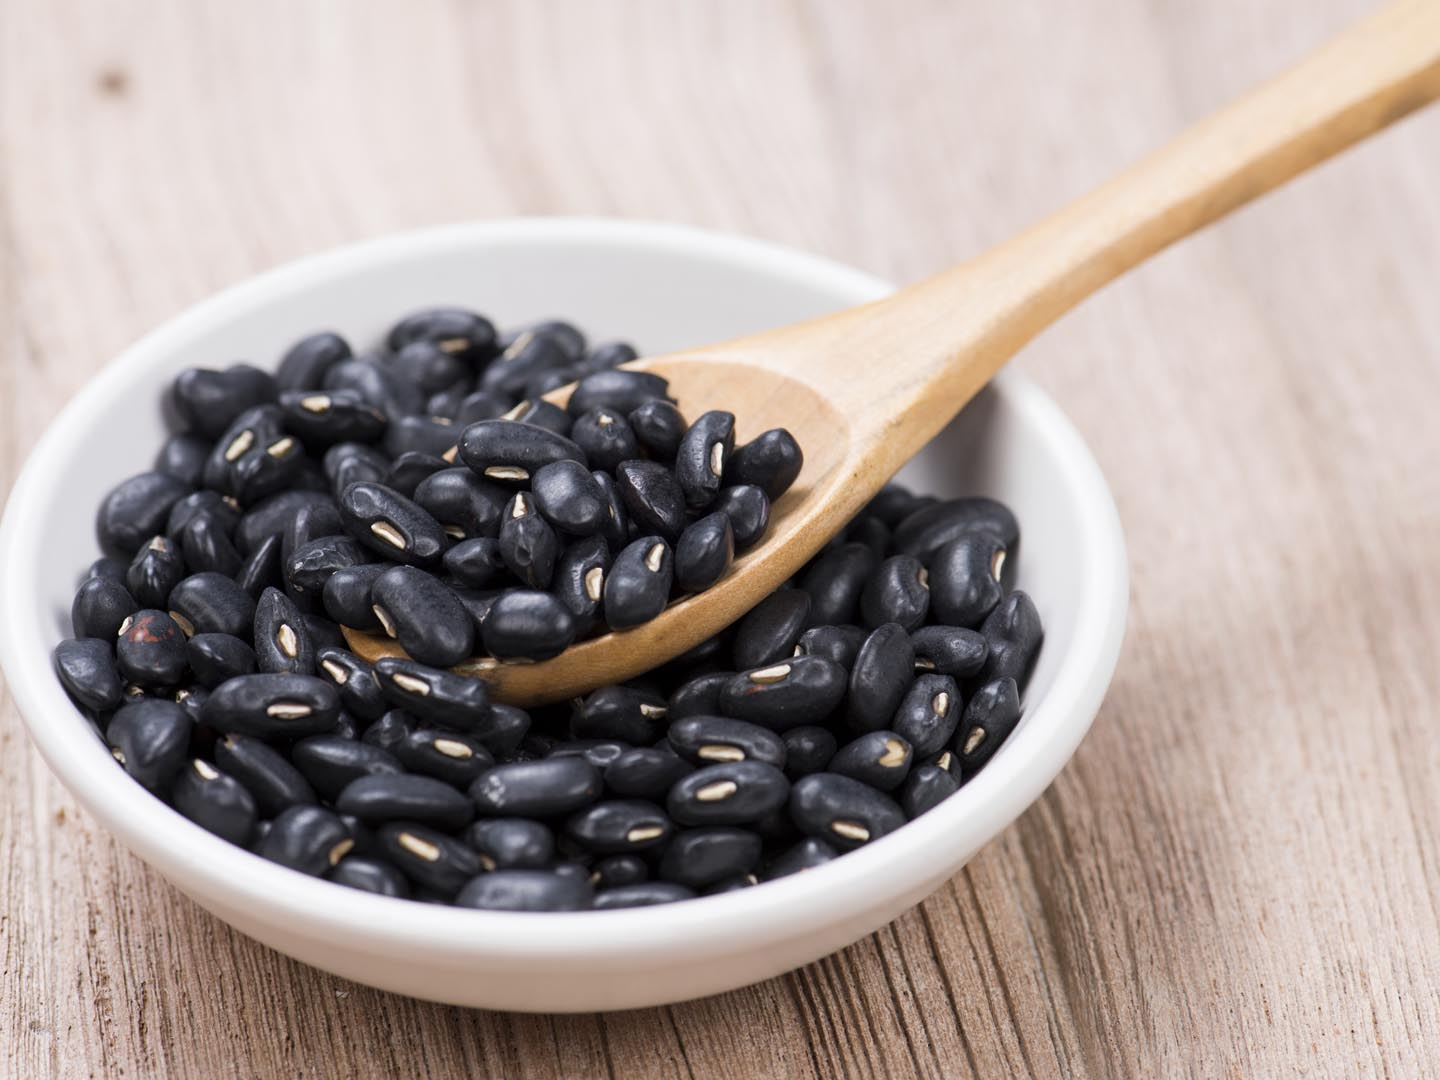 Cooking With Legumes: Black Beans - Dr. Weil's Healthy Kitchen